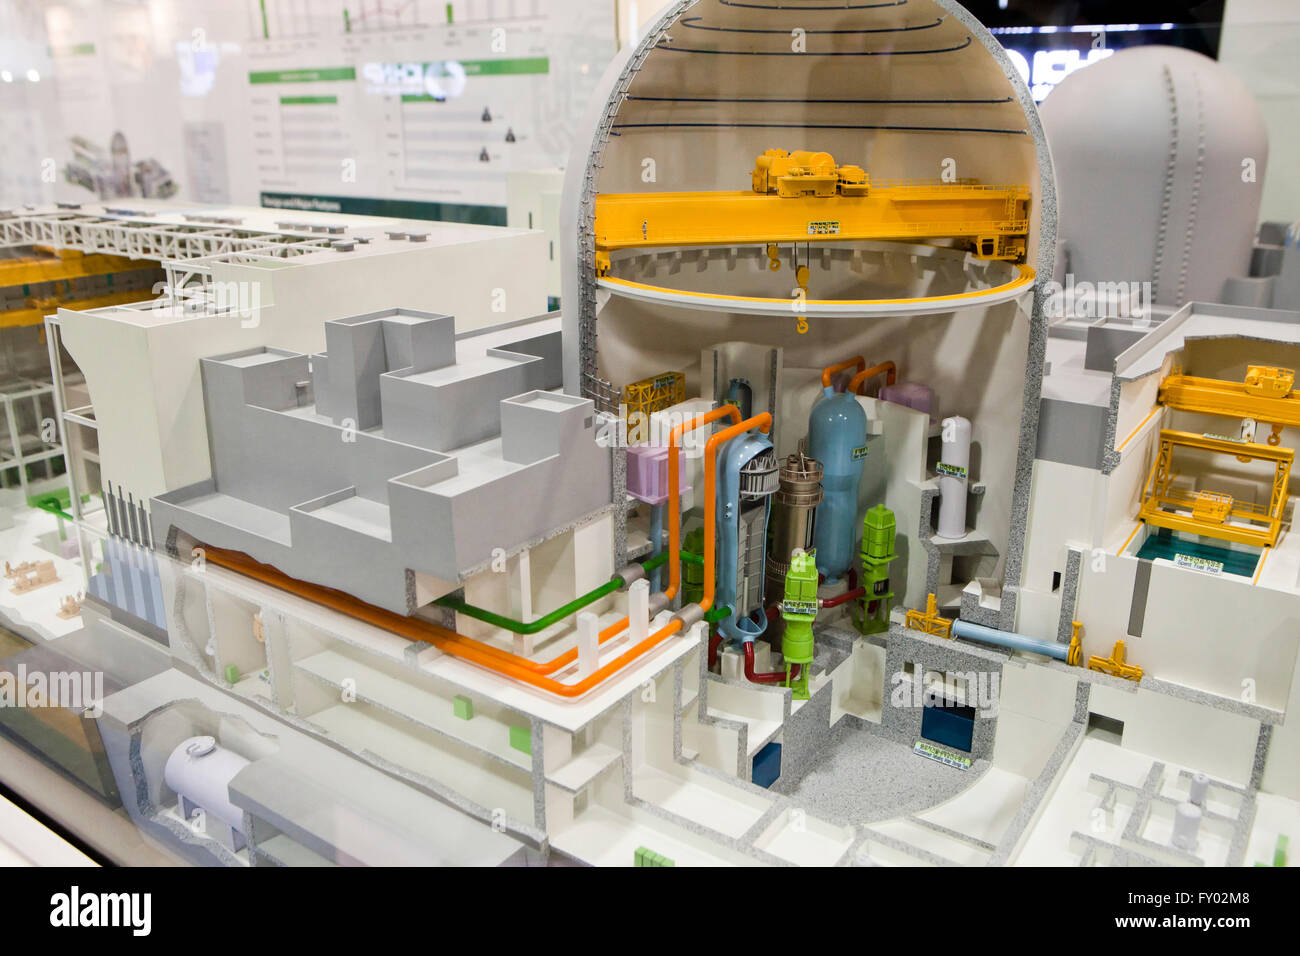 Scale model of Advanced Power Reactor 1400 (APR1400, Nuclear) - Stock Image